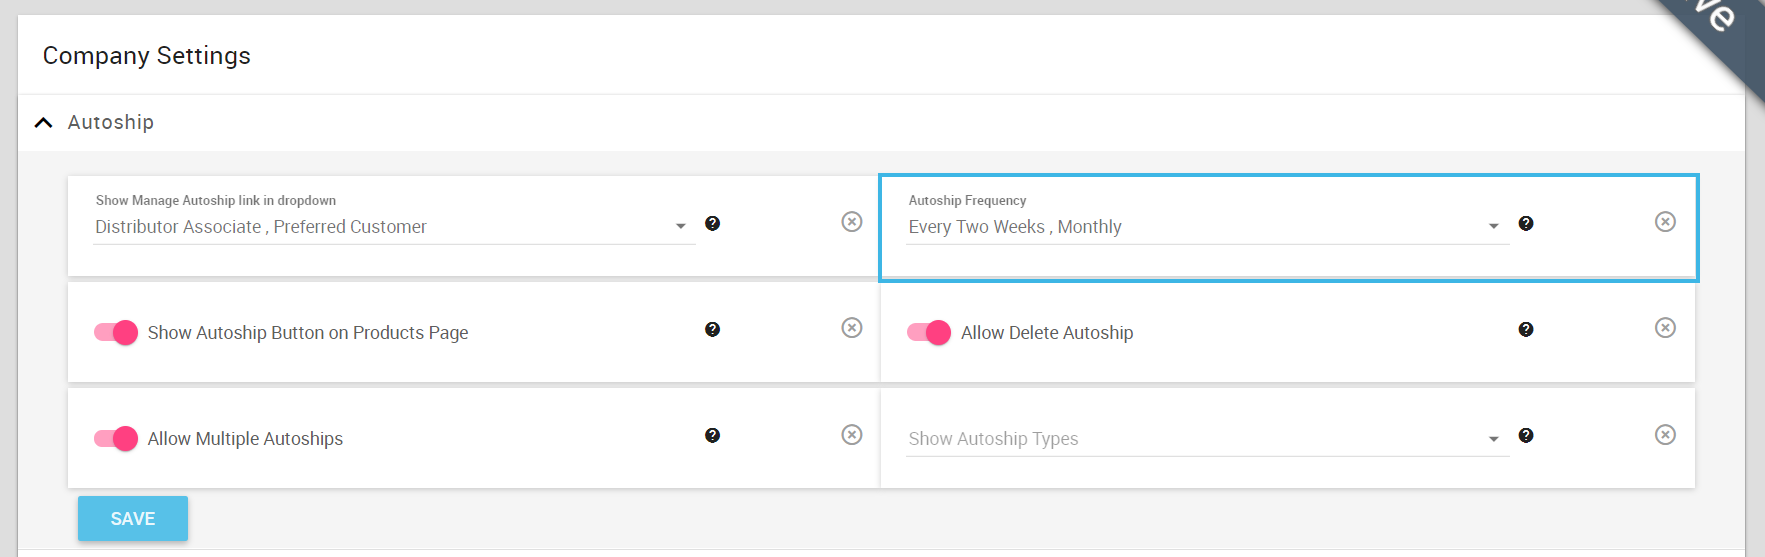 Allow Autoship Frequency dropdown